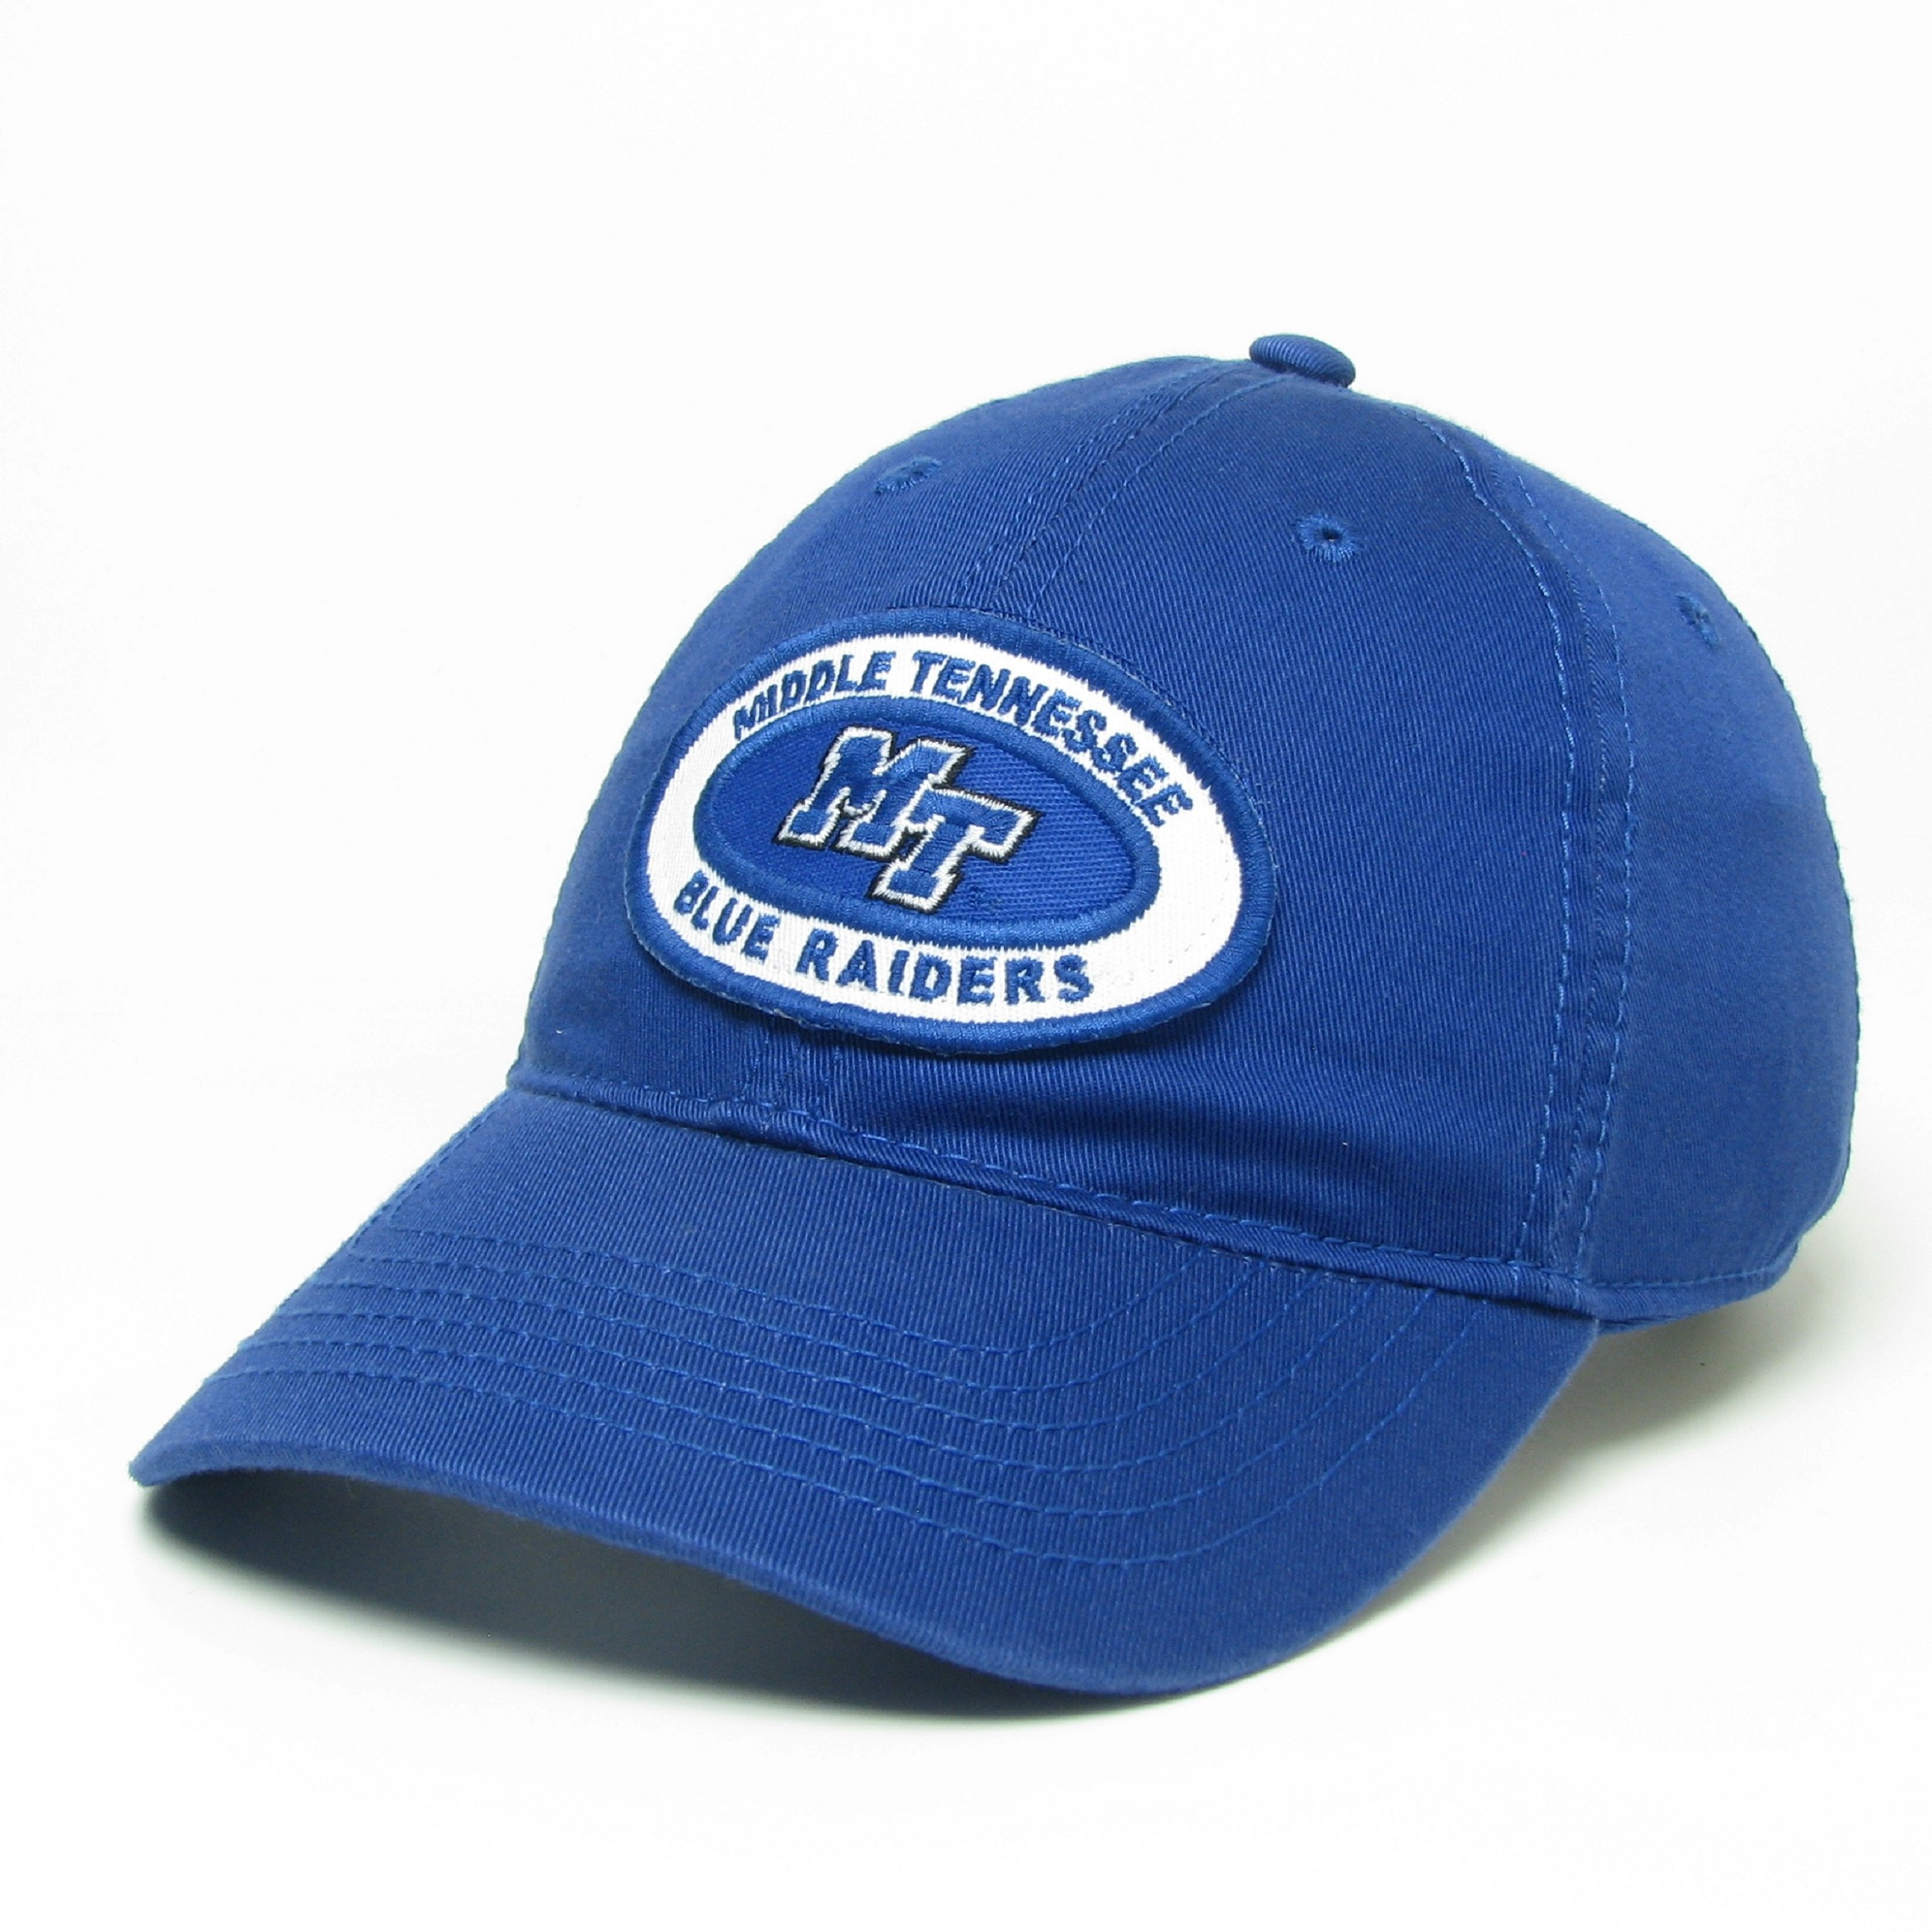 Middle Tennessee Blue Raiders Sportscast Relaxed Twill Hat